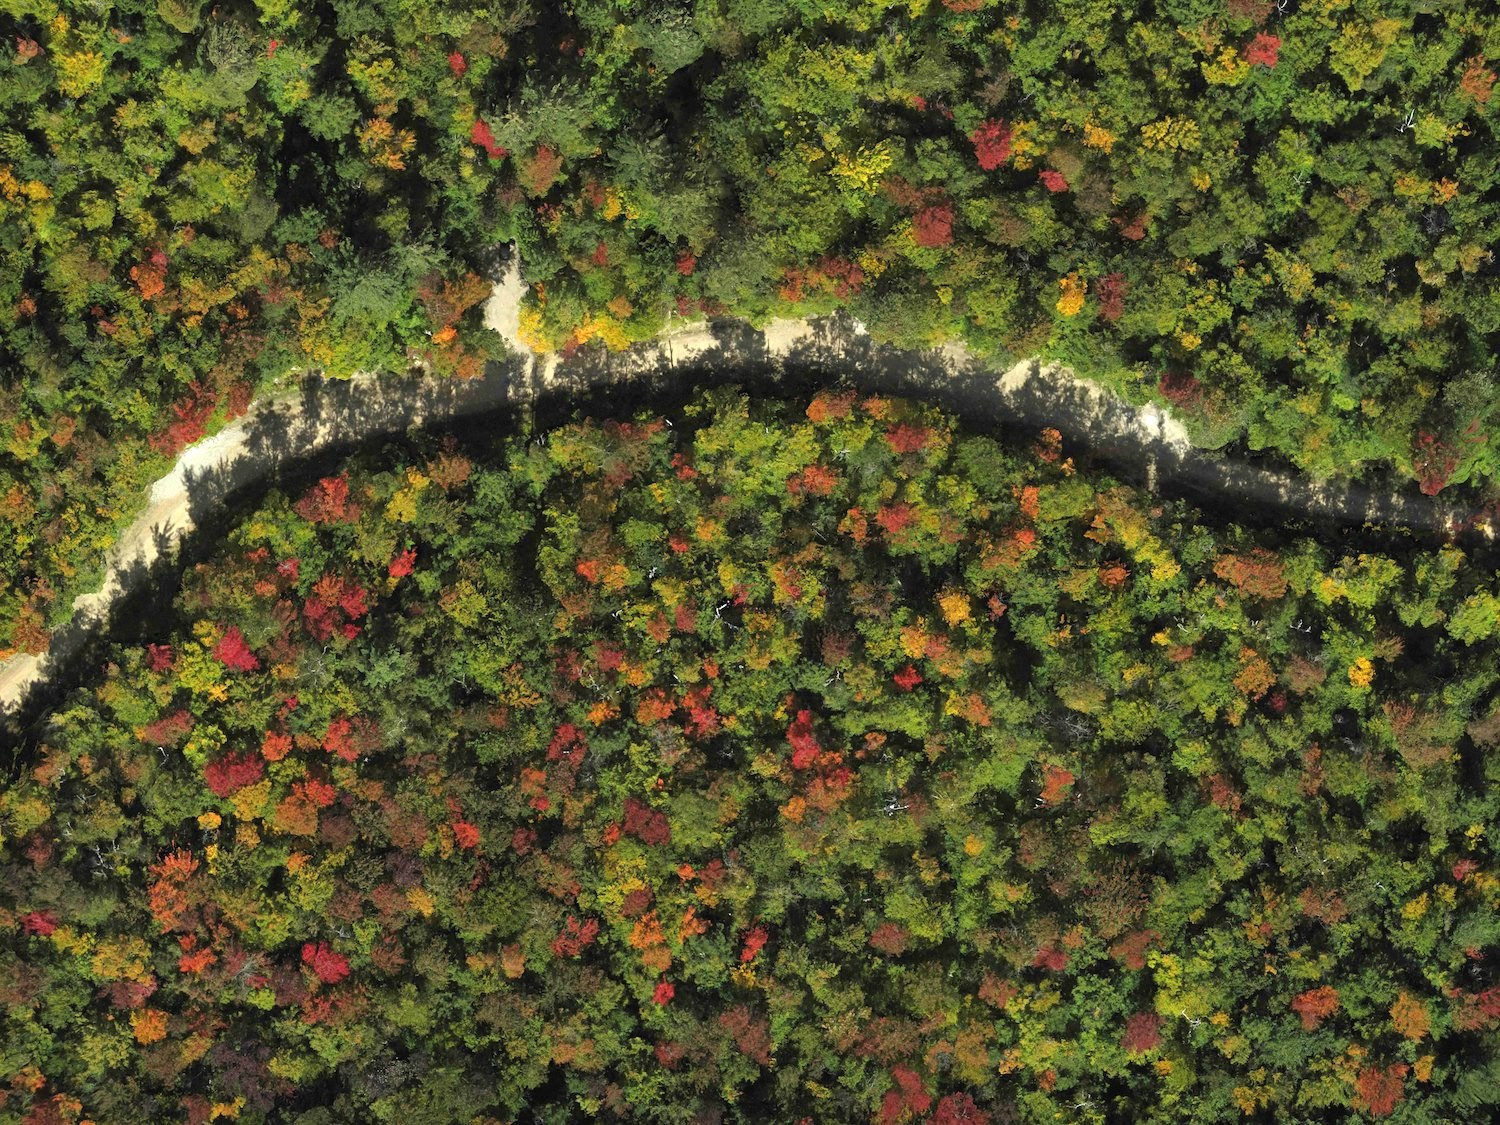 drones getting above the forest to see the trees lynda v mapes